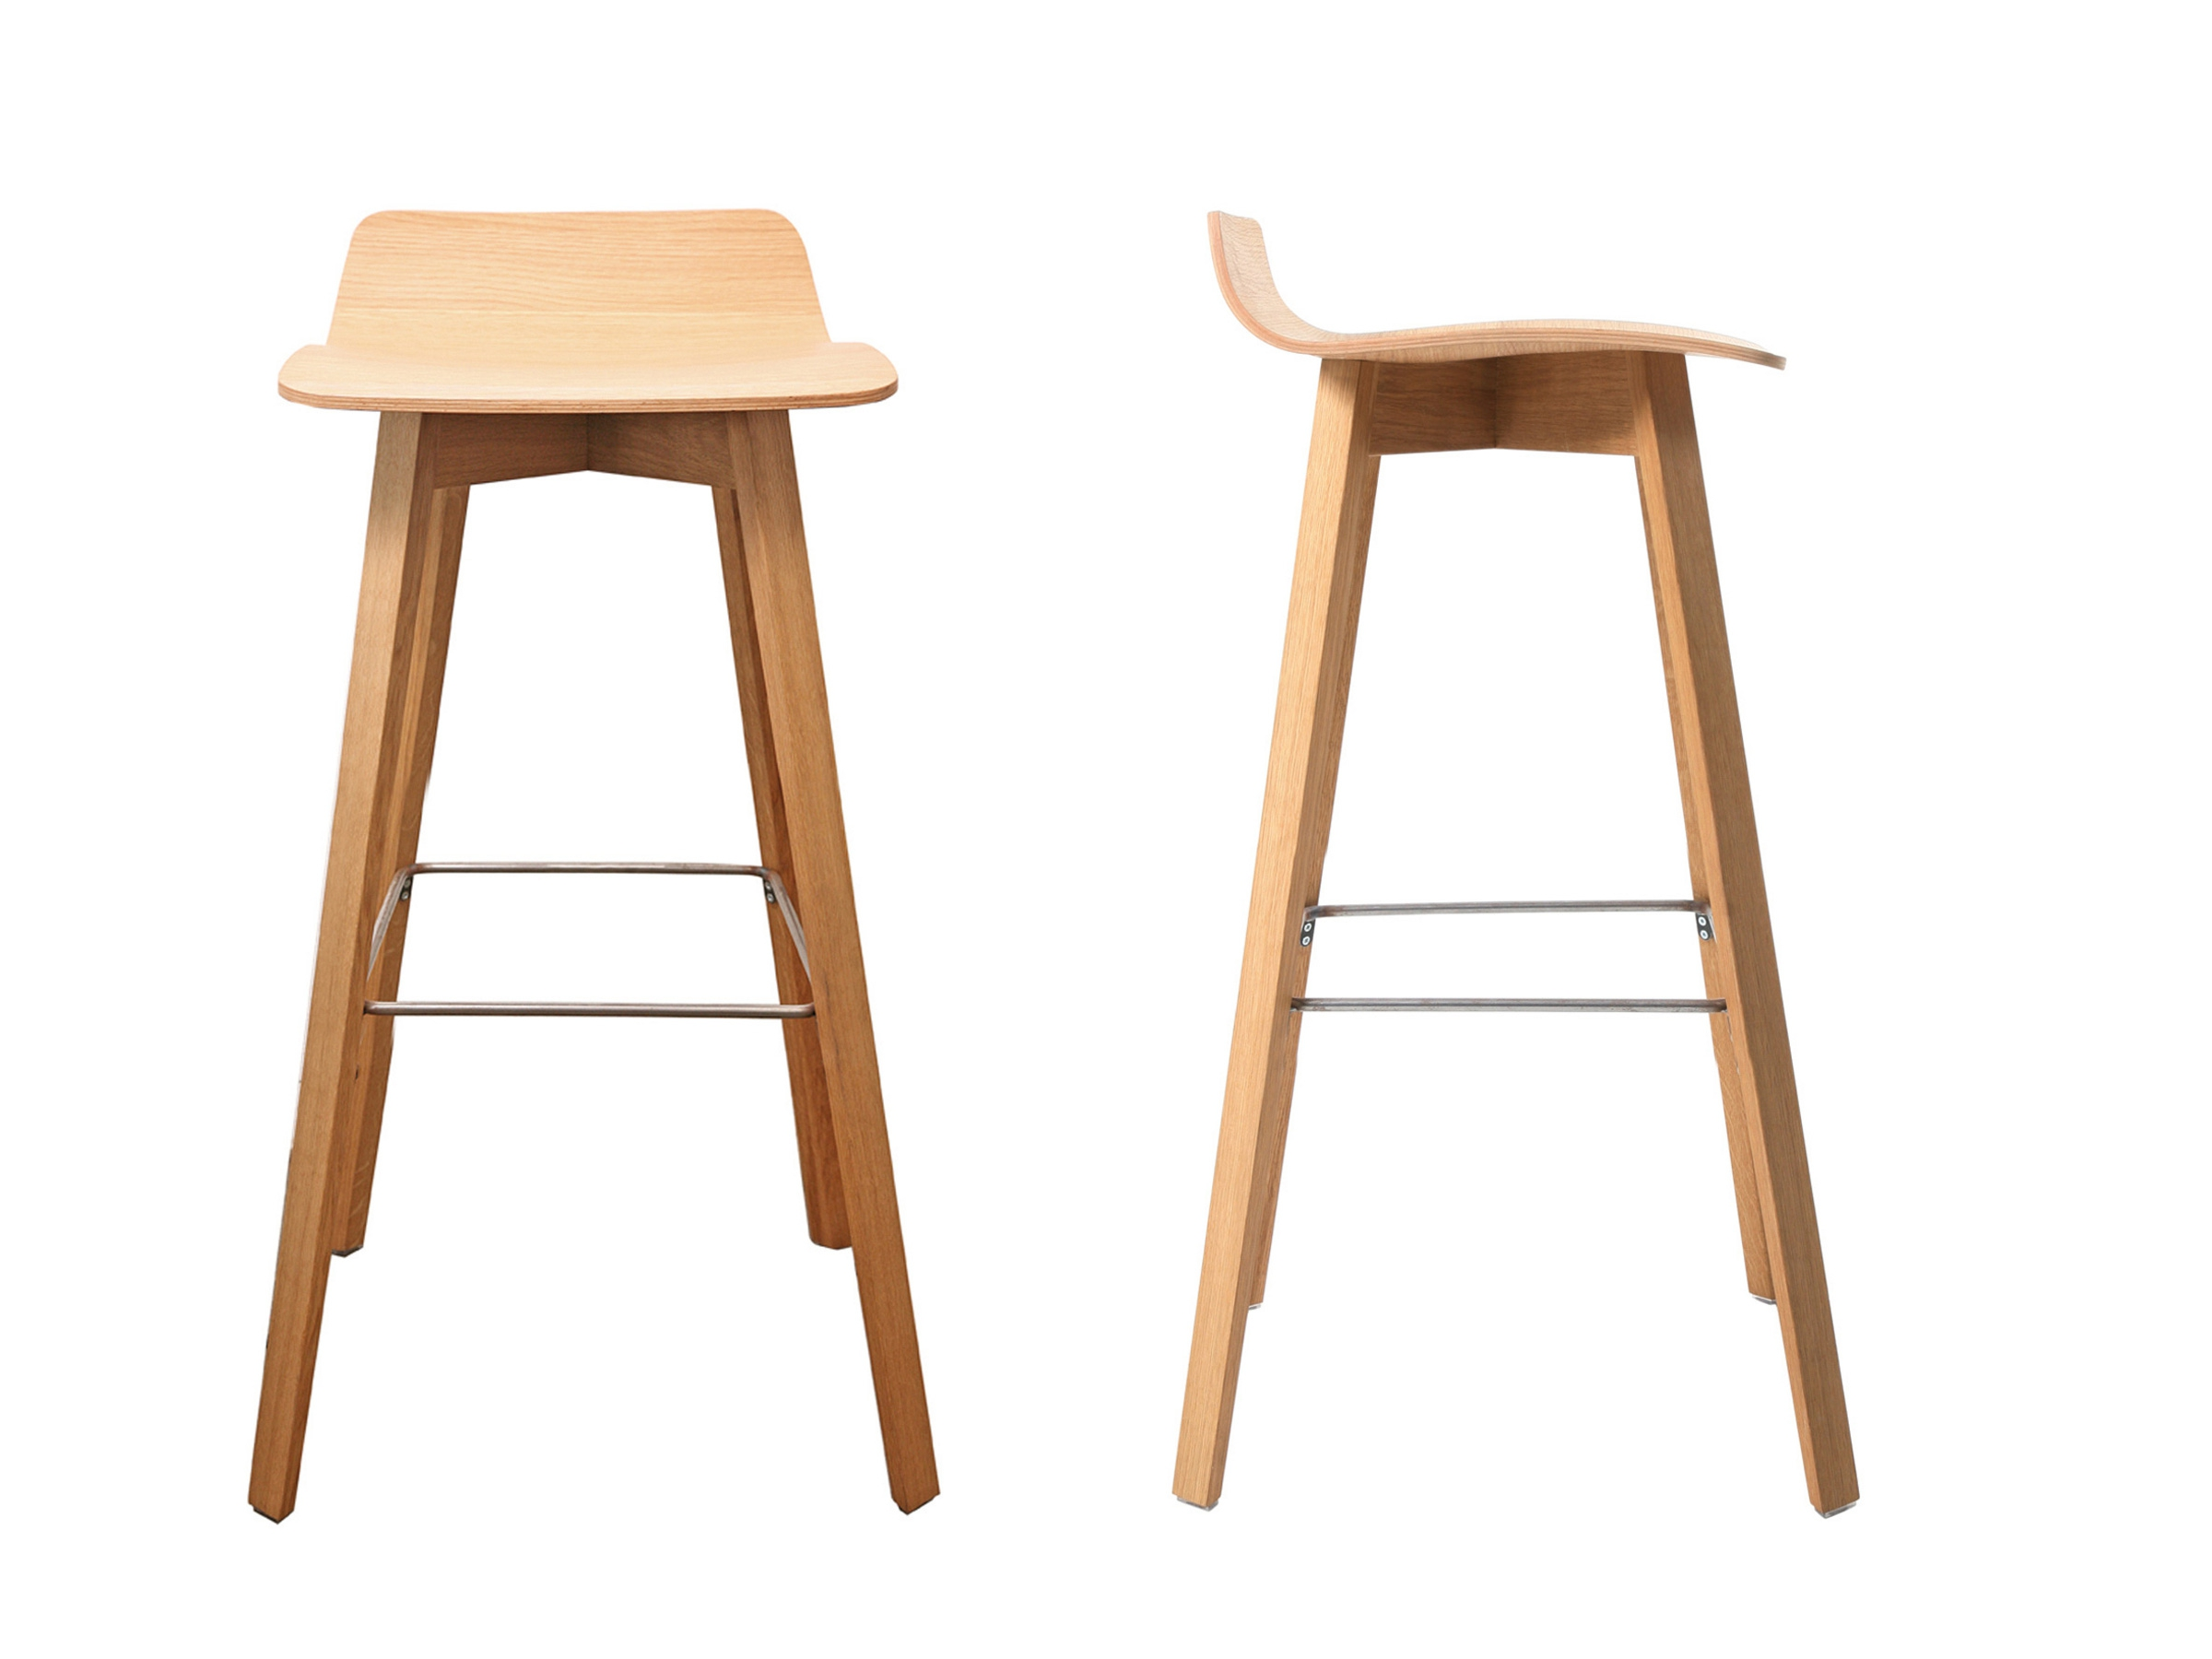 maverick multi layer wood stool by kff design birgit hoffmann